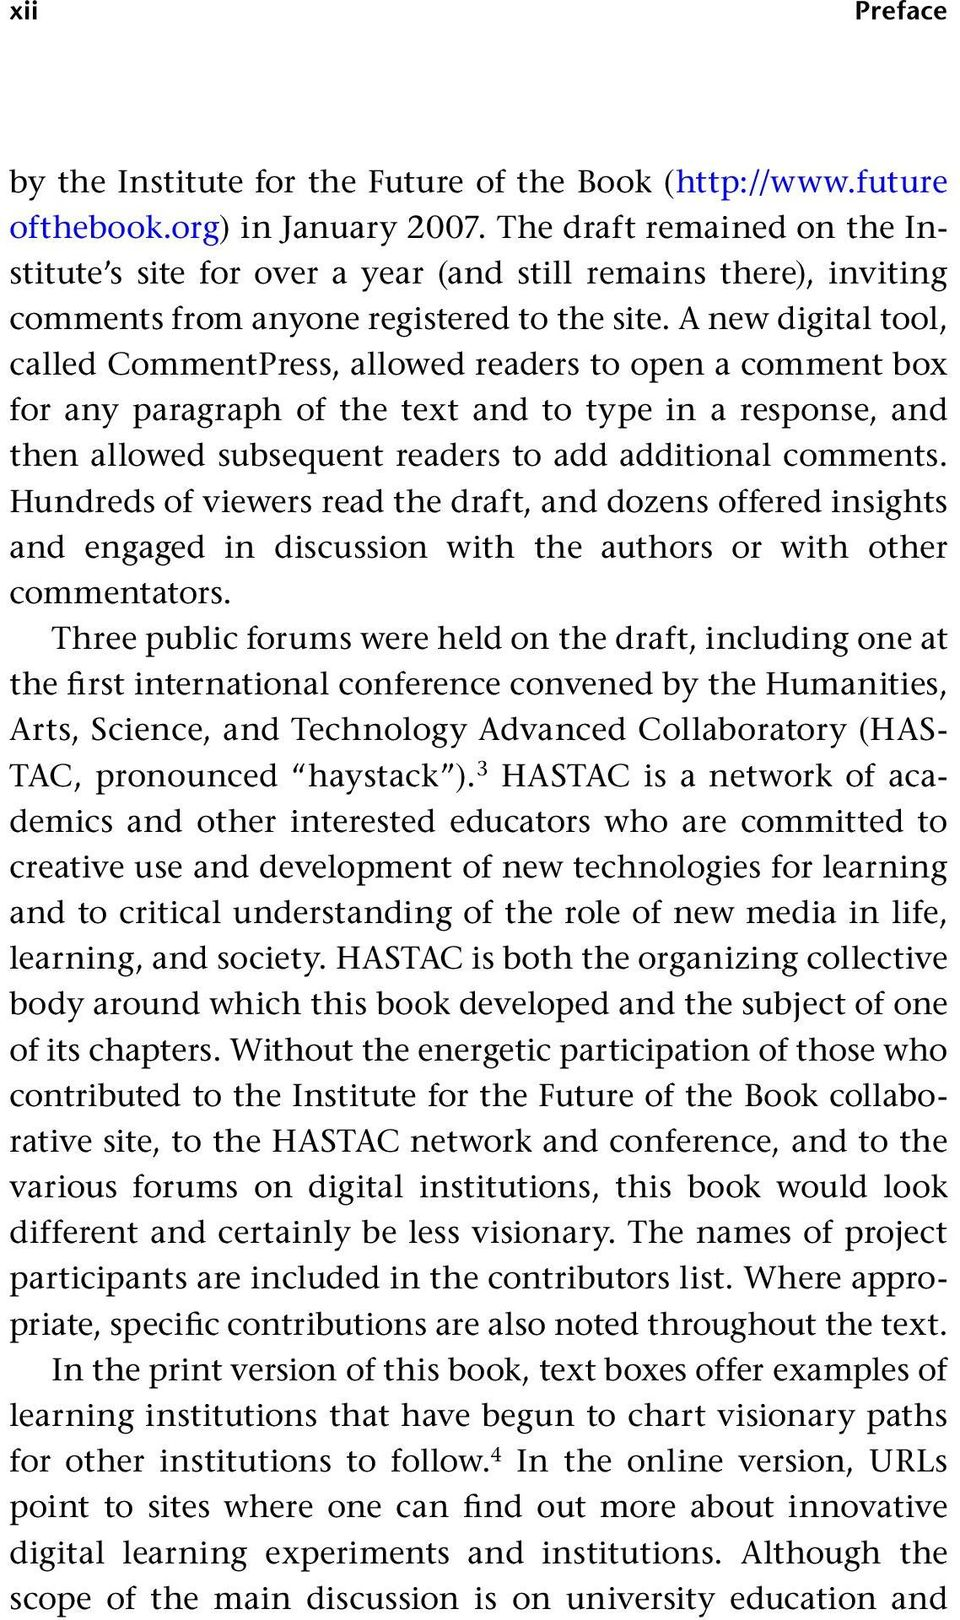 A new digital tool, called CommentPress, allowed readers to open a comment box for any paragraph of the text and to type in a response, and then allowed subsequent readers to add additional comments.